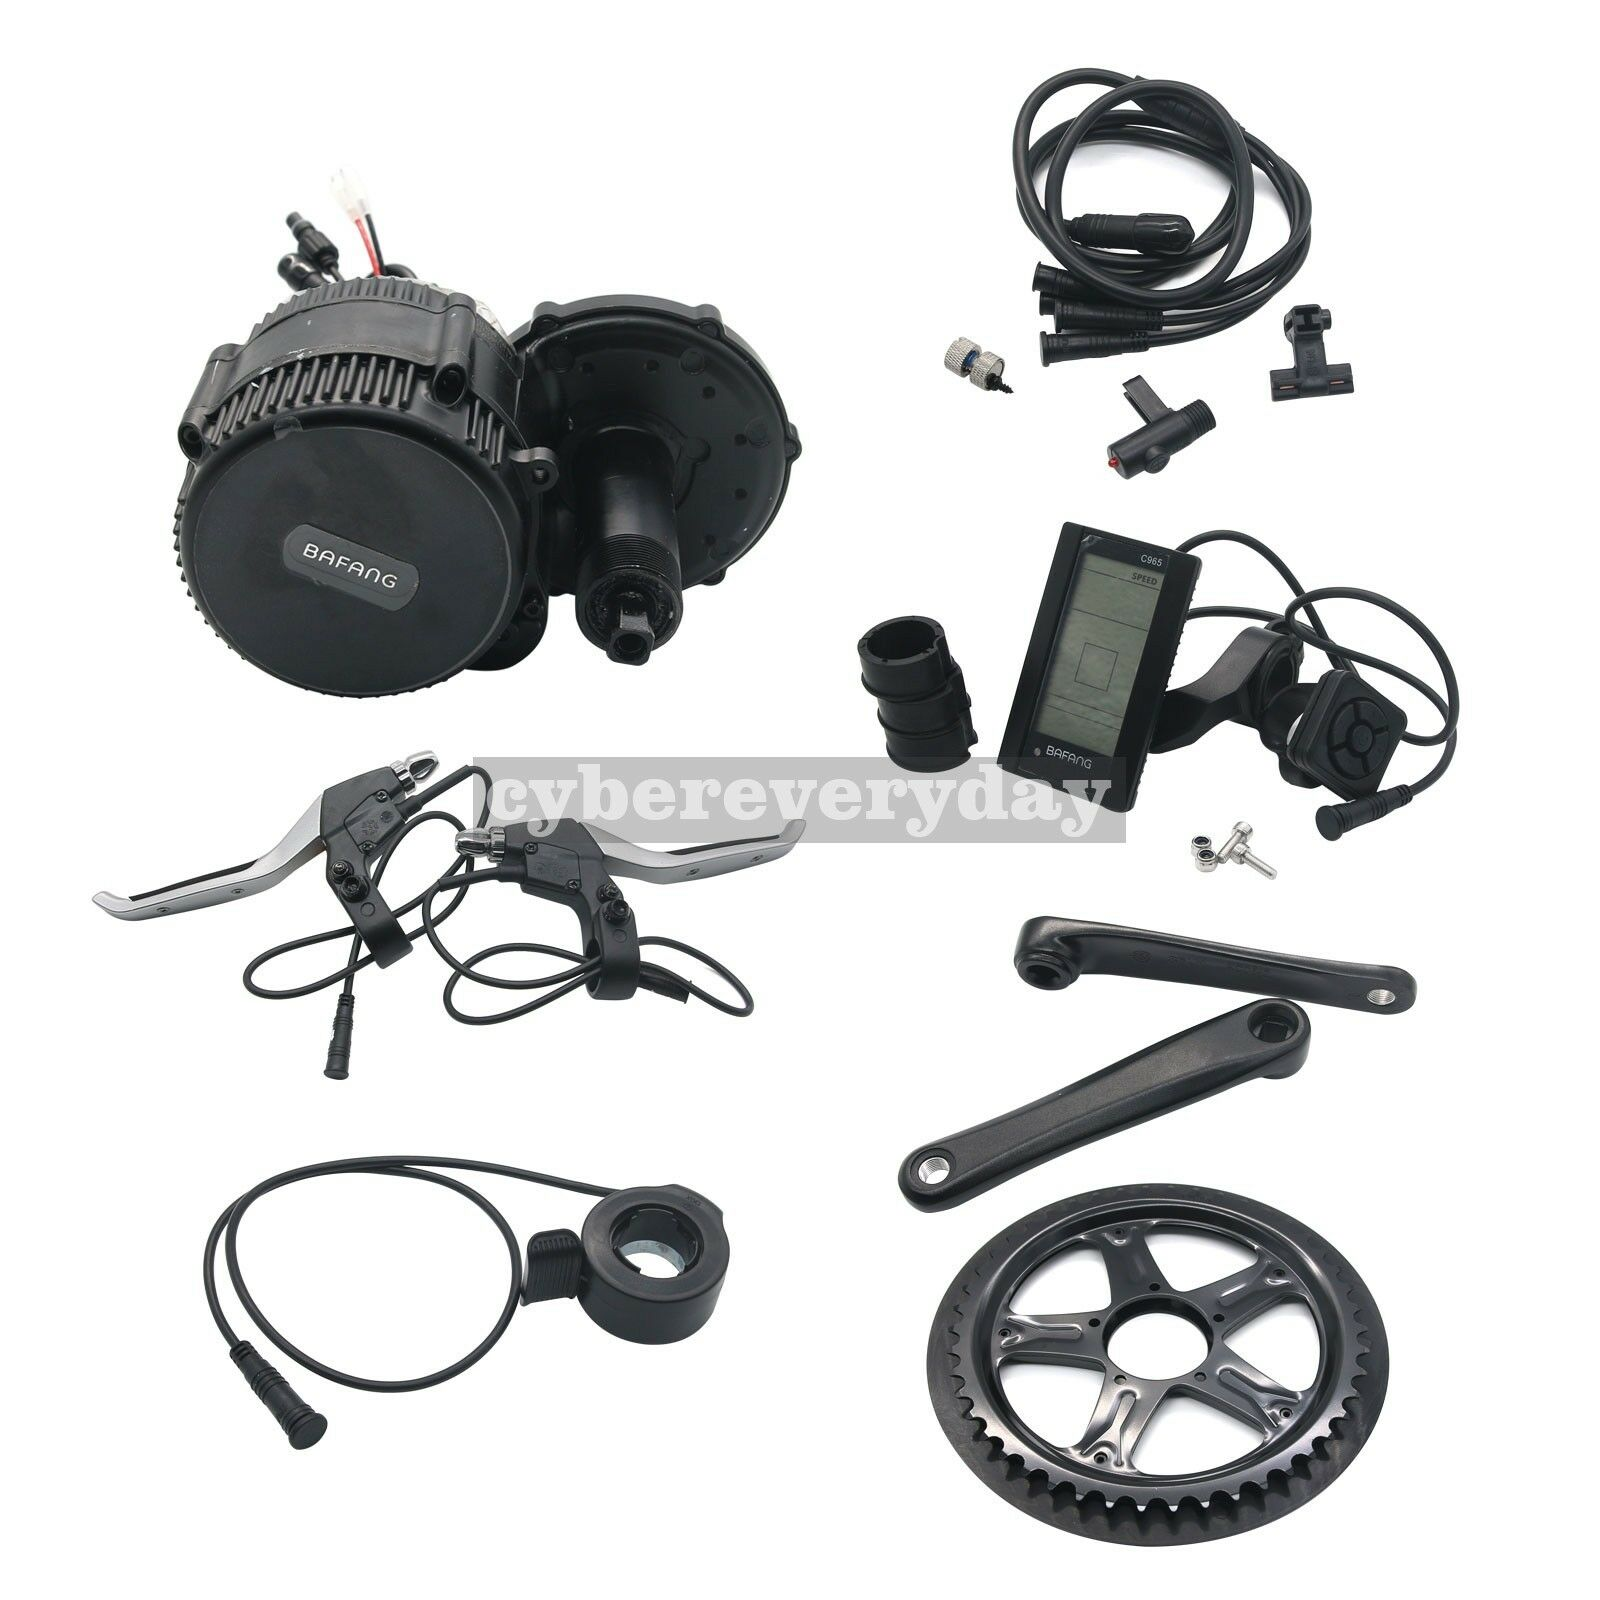 BAFANG BBS02 48V 750W Mid Drive Motor Conversion Kit C965 Electric Bike